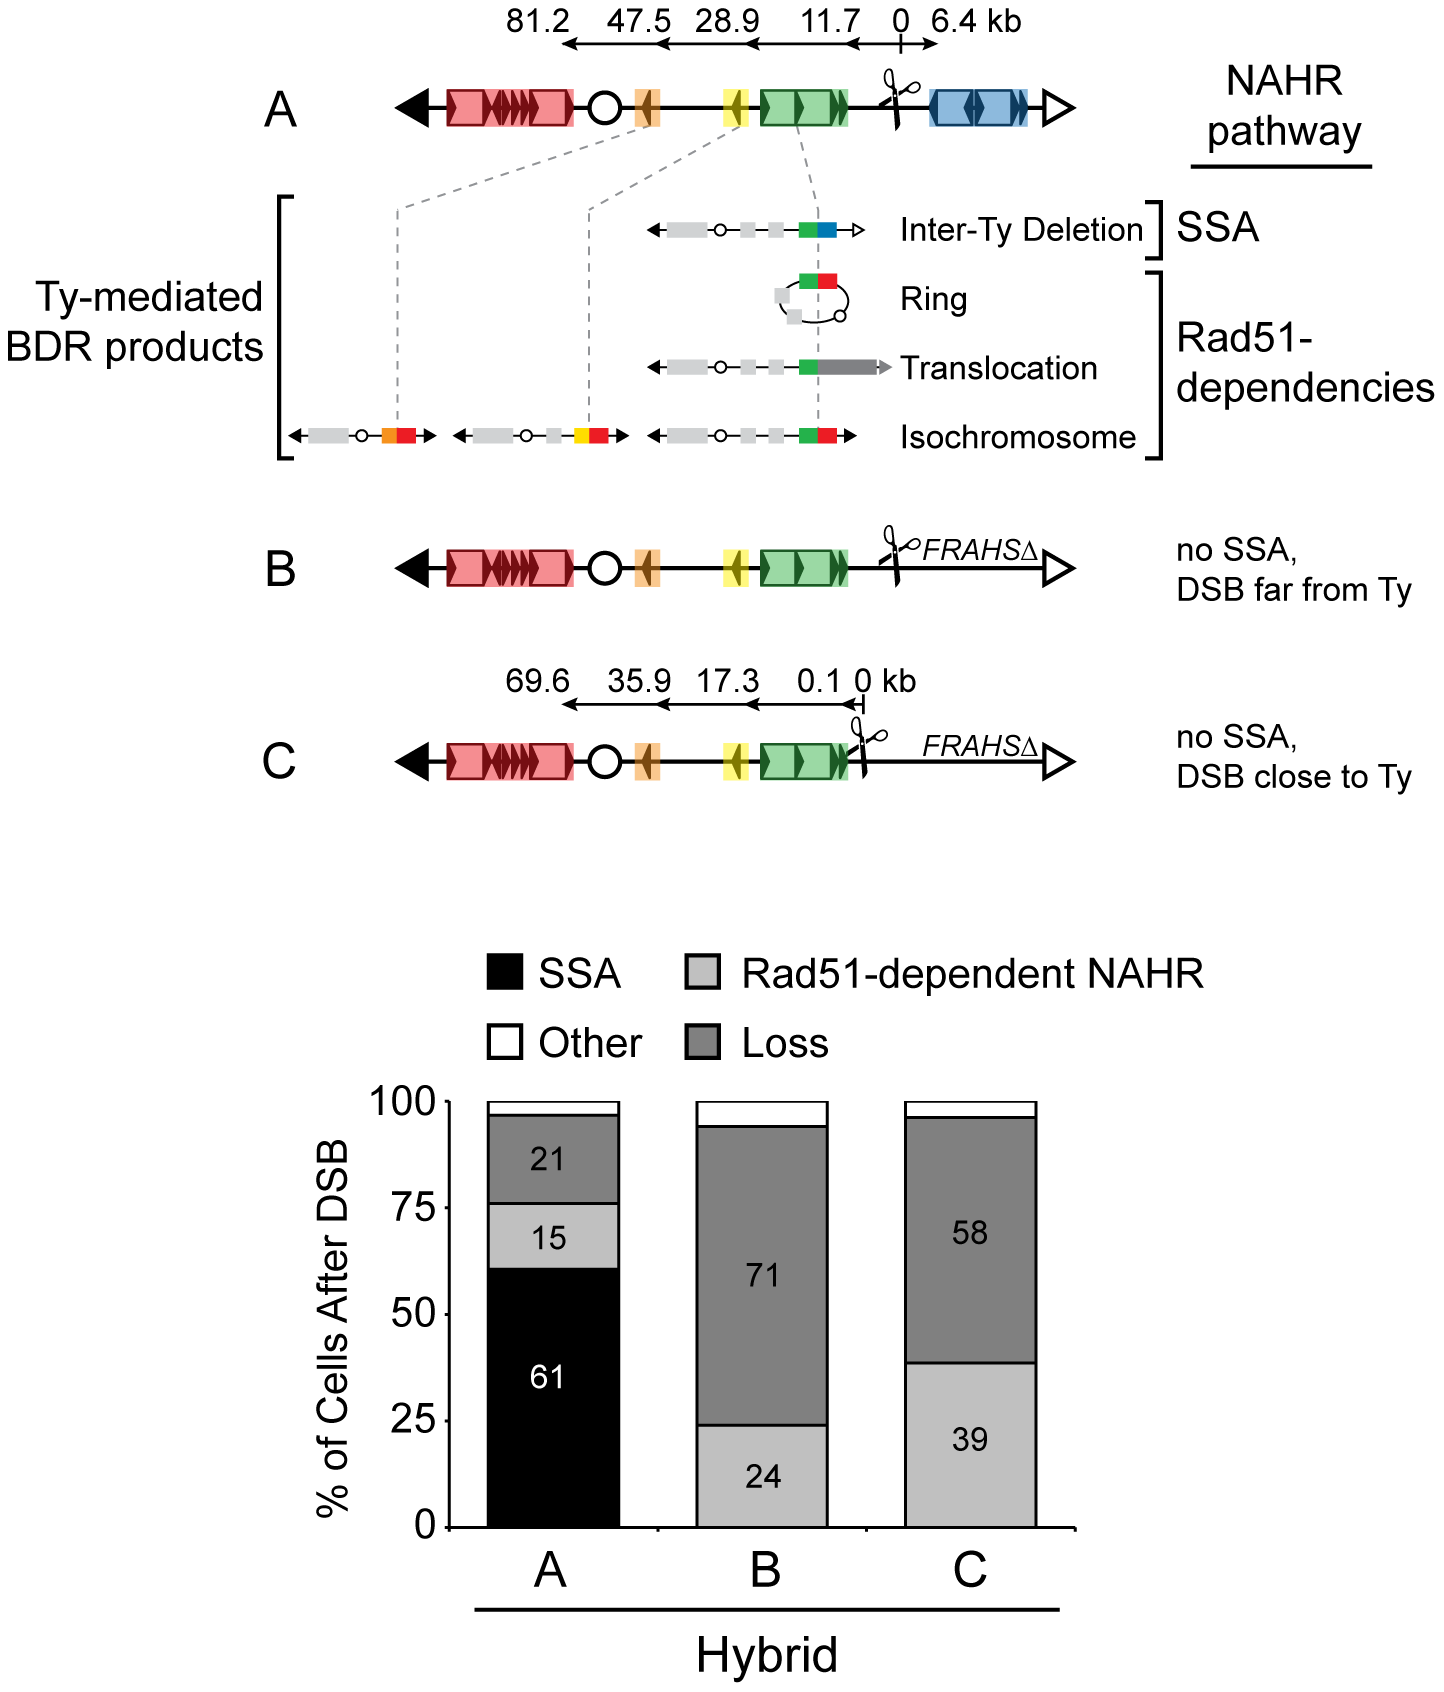 Pathway competition with DSB in unique DNA: SSA is most efficient and Rad51-dependent NAHR is inherently inefficient.